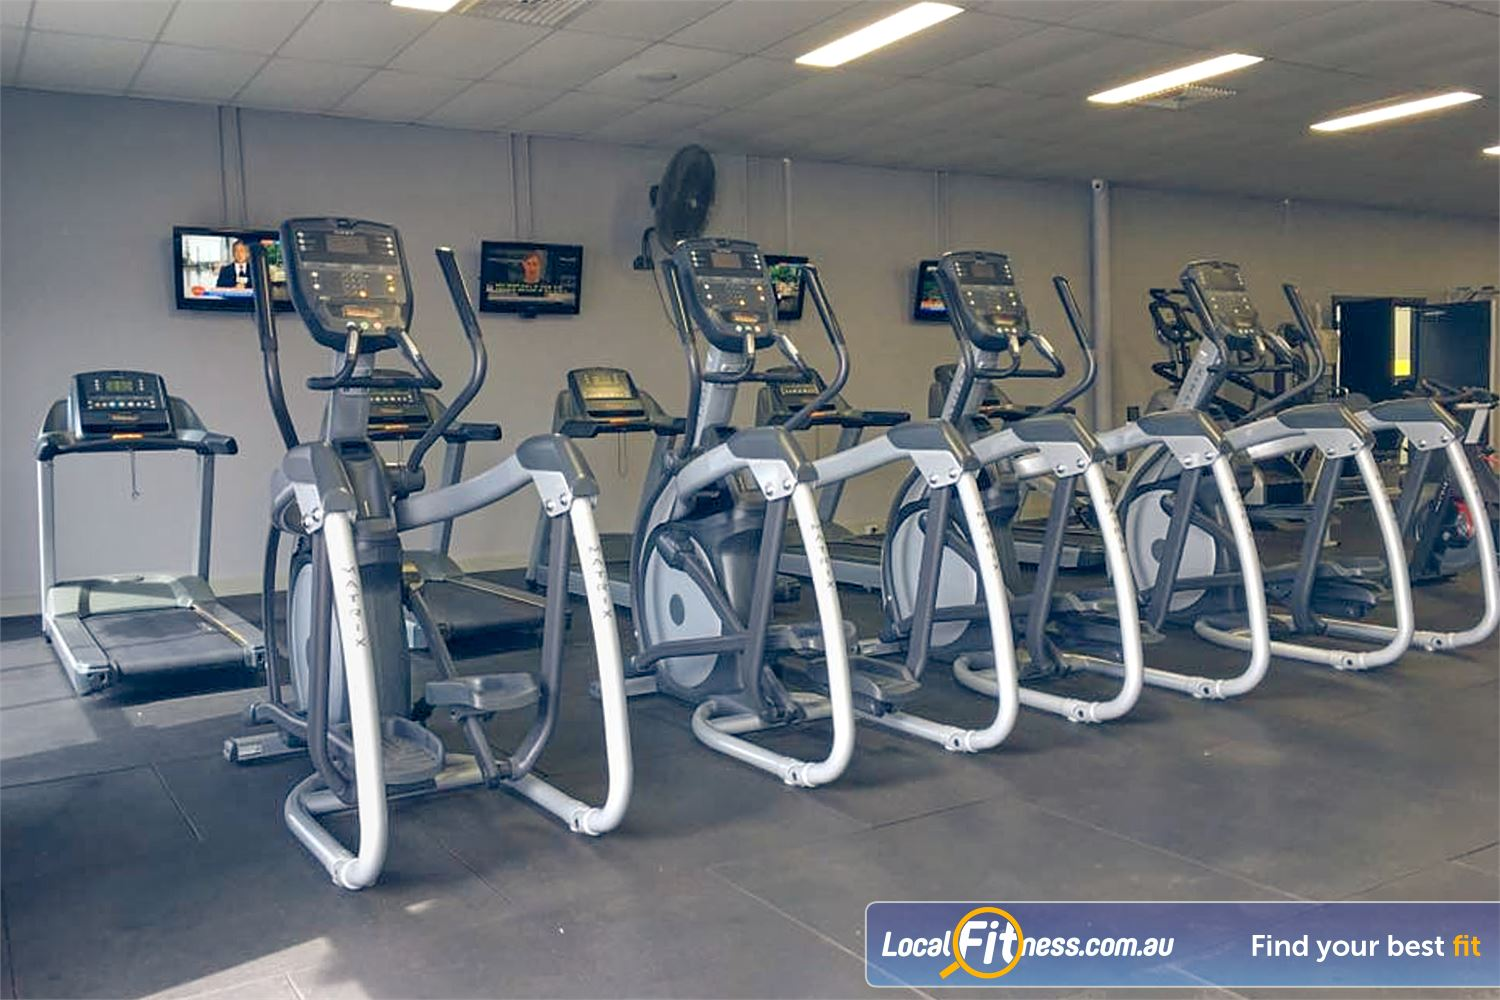 Culture 24:7 Wanneroo Rows and rows of state of the art cardio so you don't have to wait.